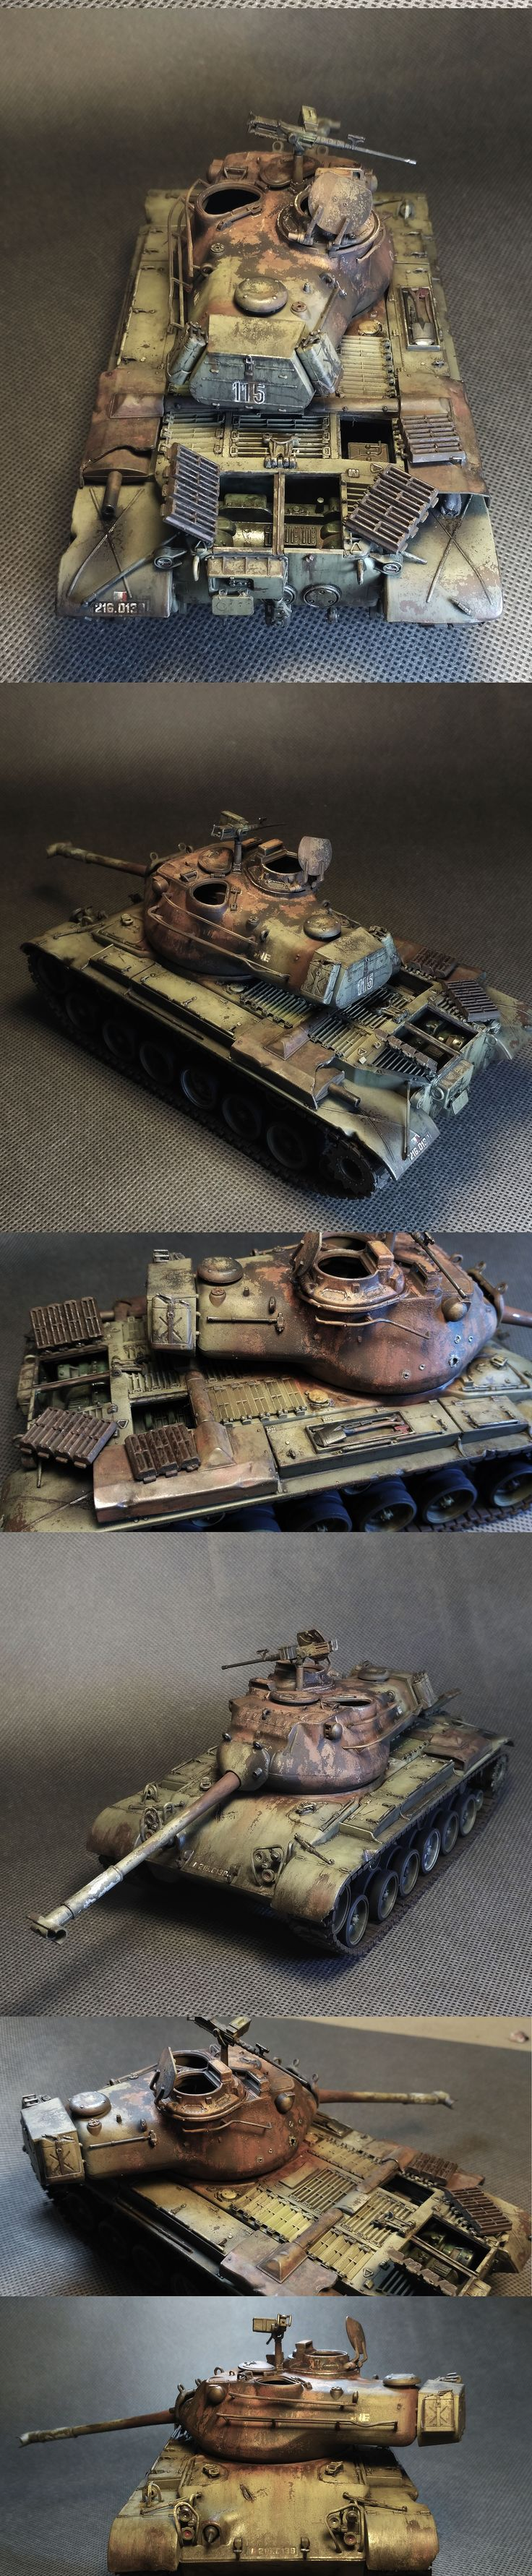 M47 Patton Knocked out. hit the tower and burned. Model, Tank, M 47